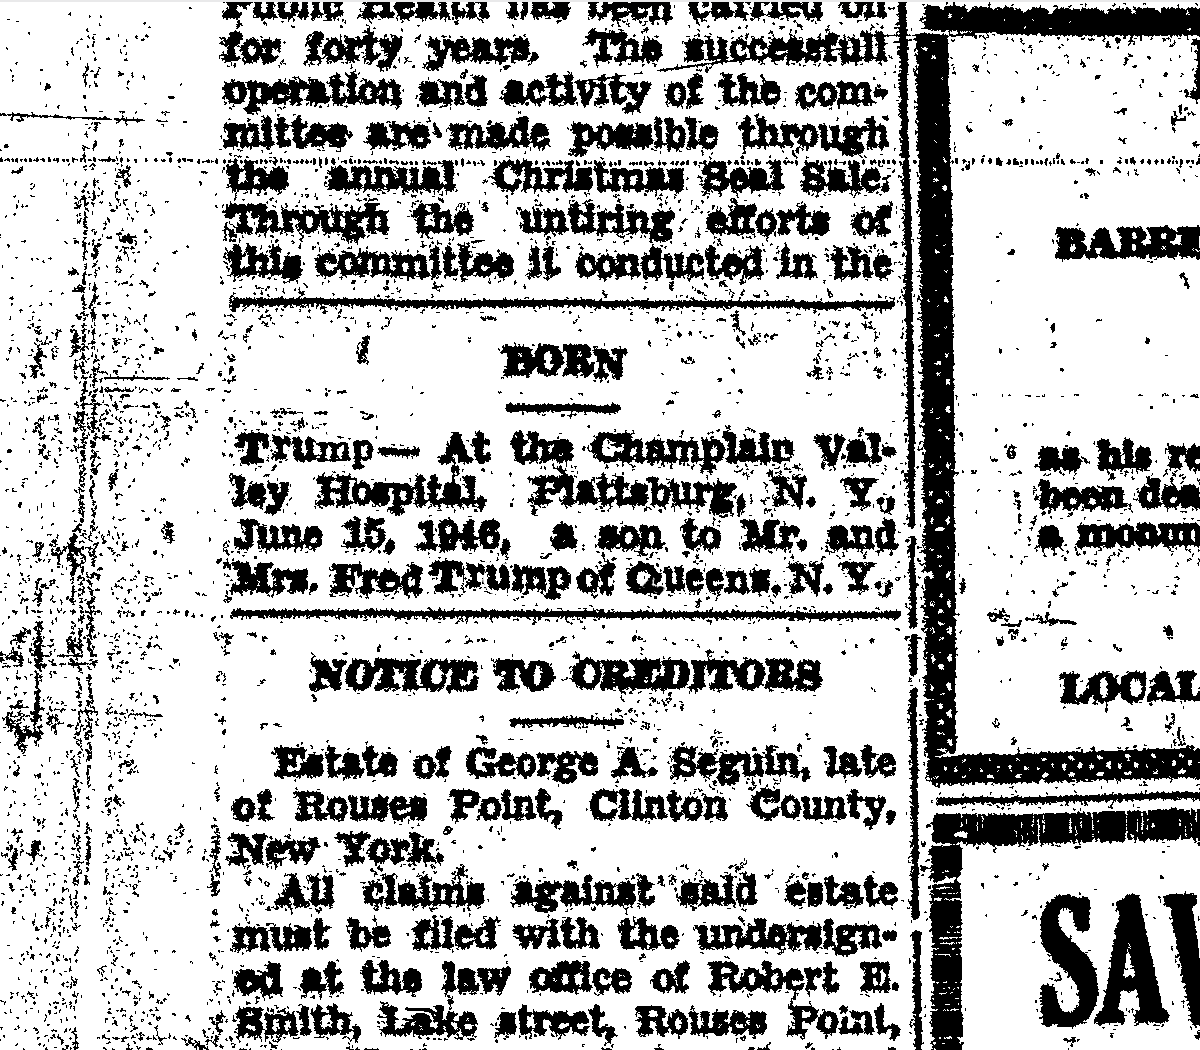 champlain valley hospital - June 15, 1946 Trump